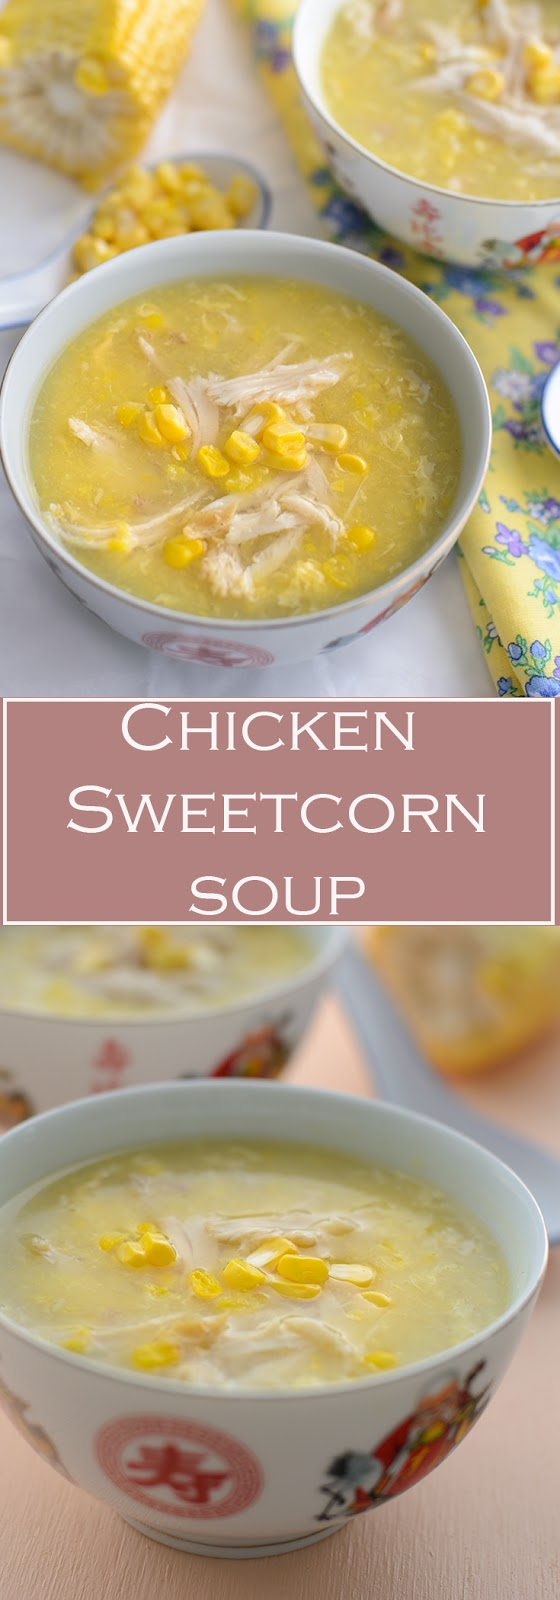 Smooth Silky chicken sweetcorn soup use either fresh chicken breast for healthier option or use leftover roast chicken, either fresh corns or canned creamed corn. From stove to table in less than 15 minutes